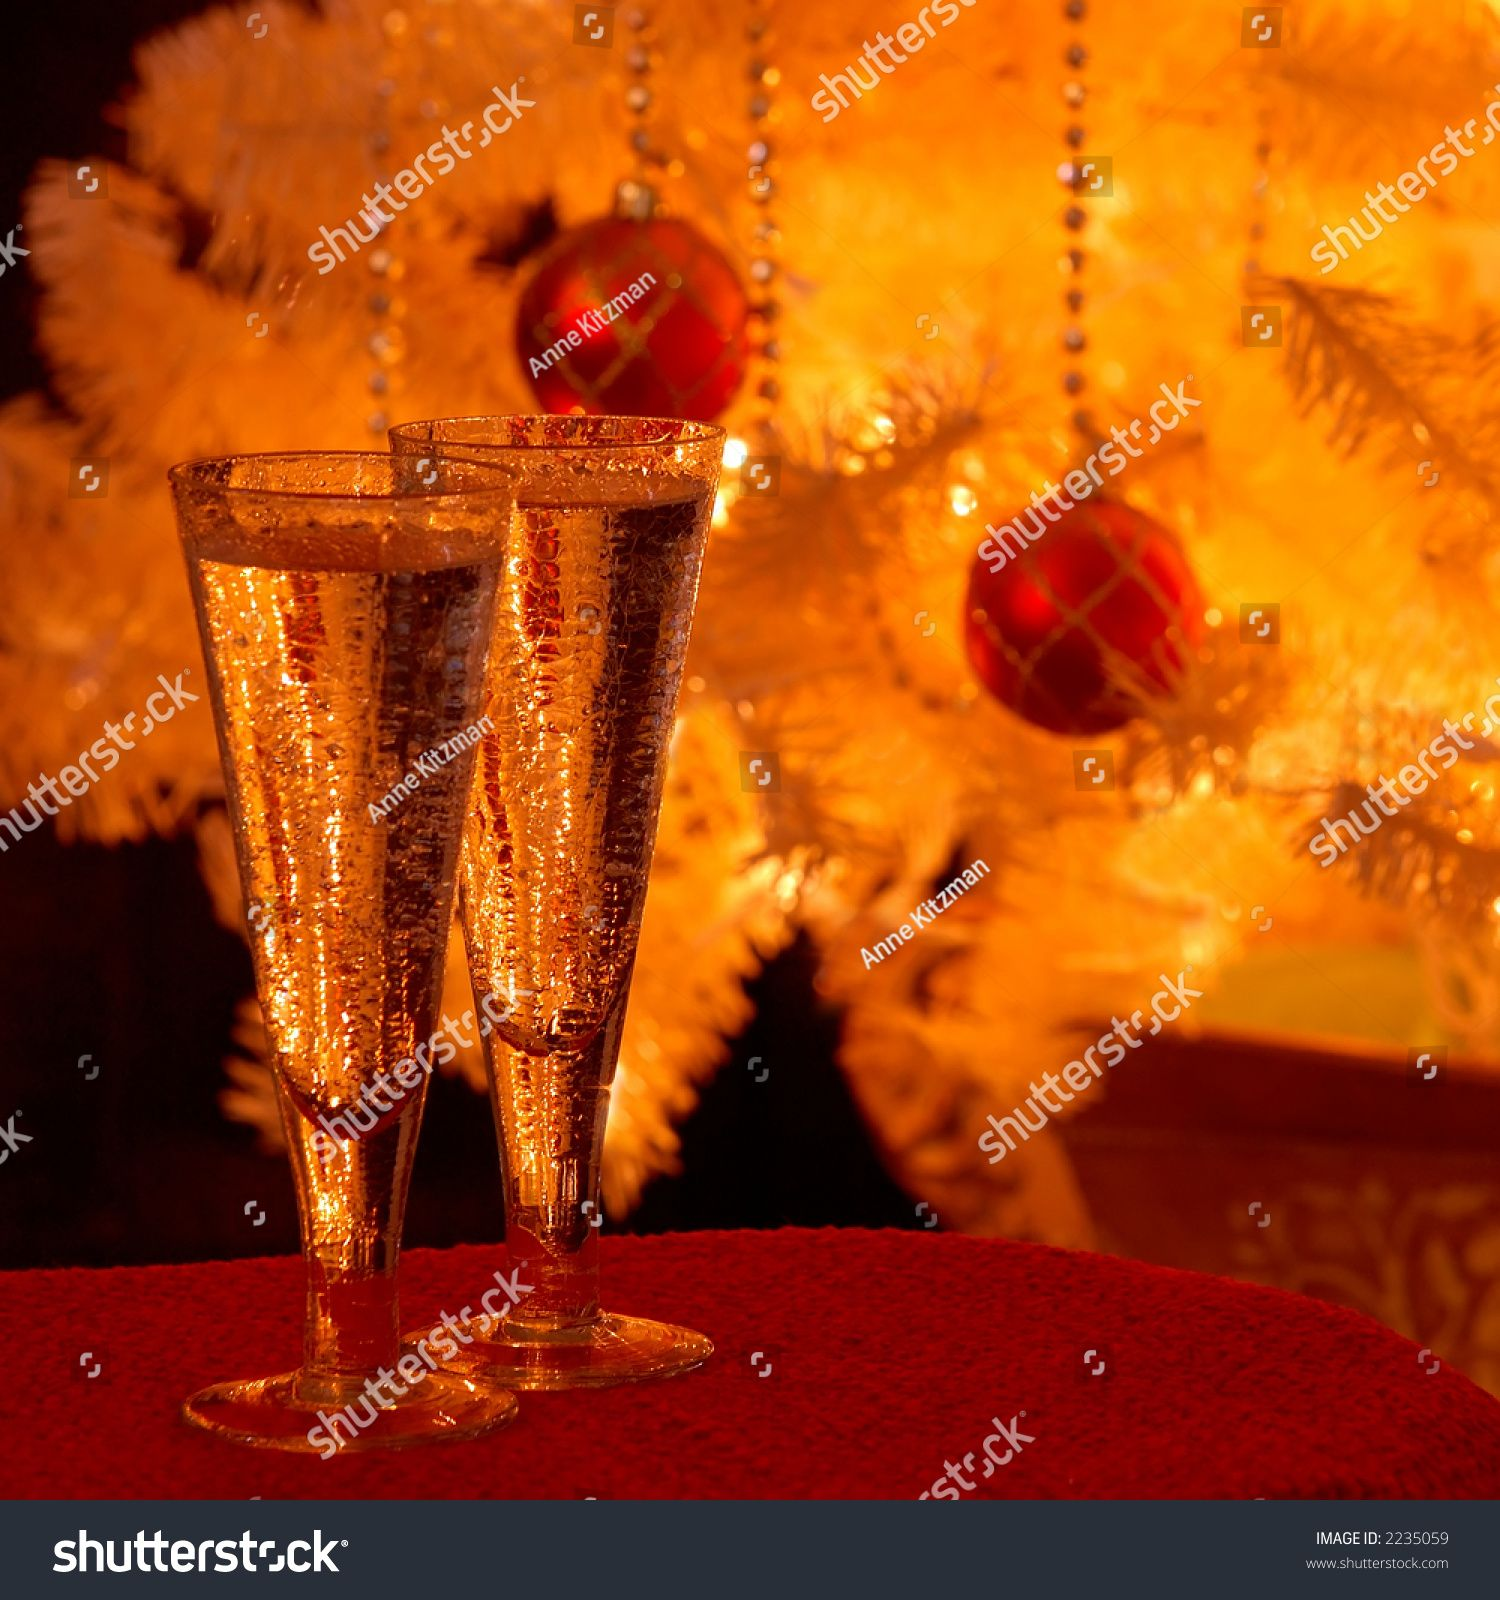 Holiday Cheer Two Glasses Of Wine In Front Of The Lighted Christmas Tree In The Evening Ad Ad Glasses Wine Holiday In 2020 Holiday Cheer Holiday Wine Holiday